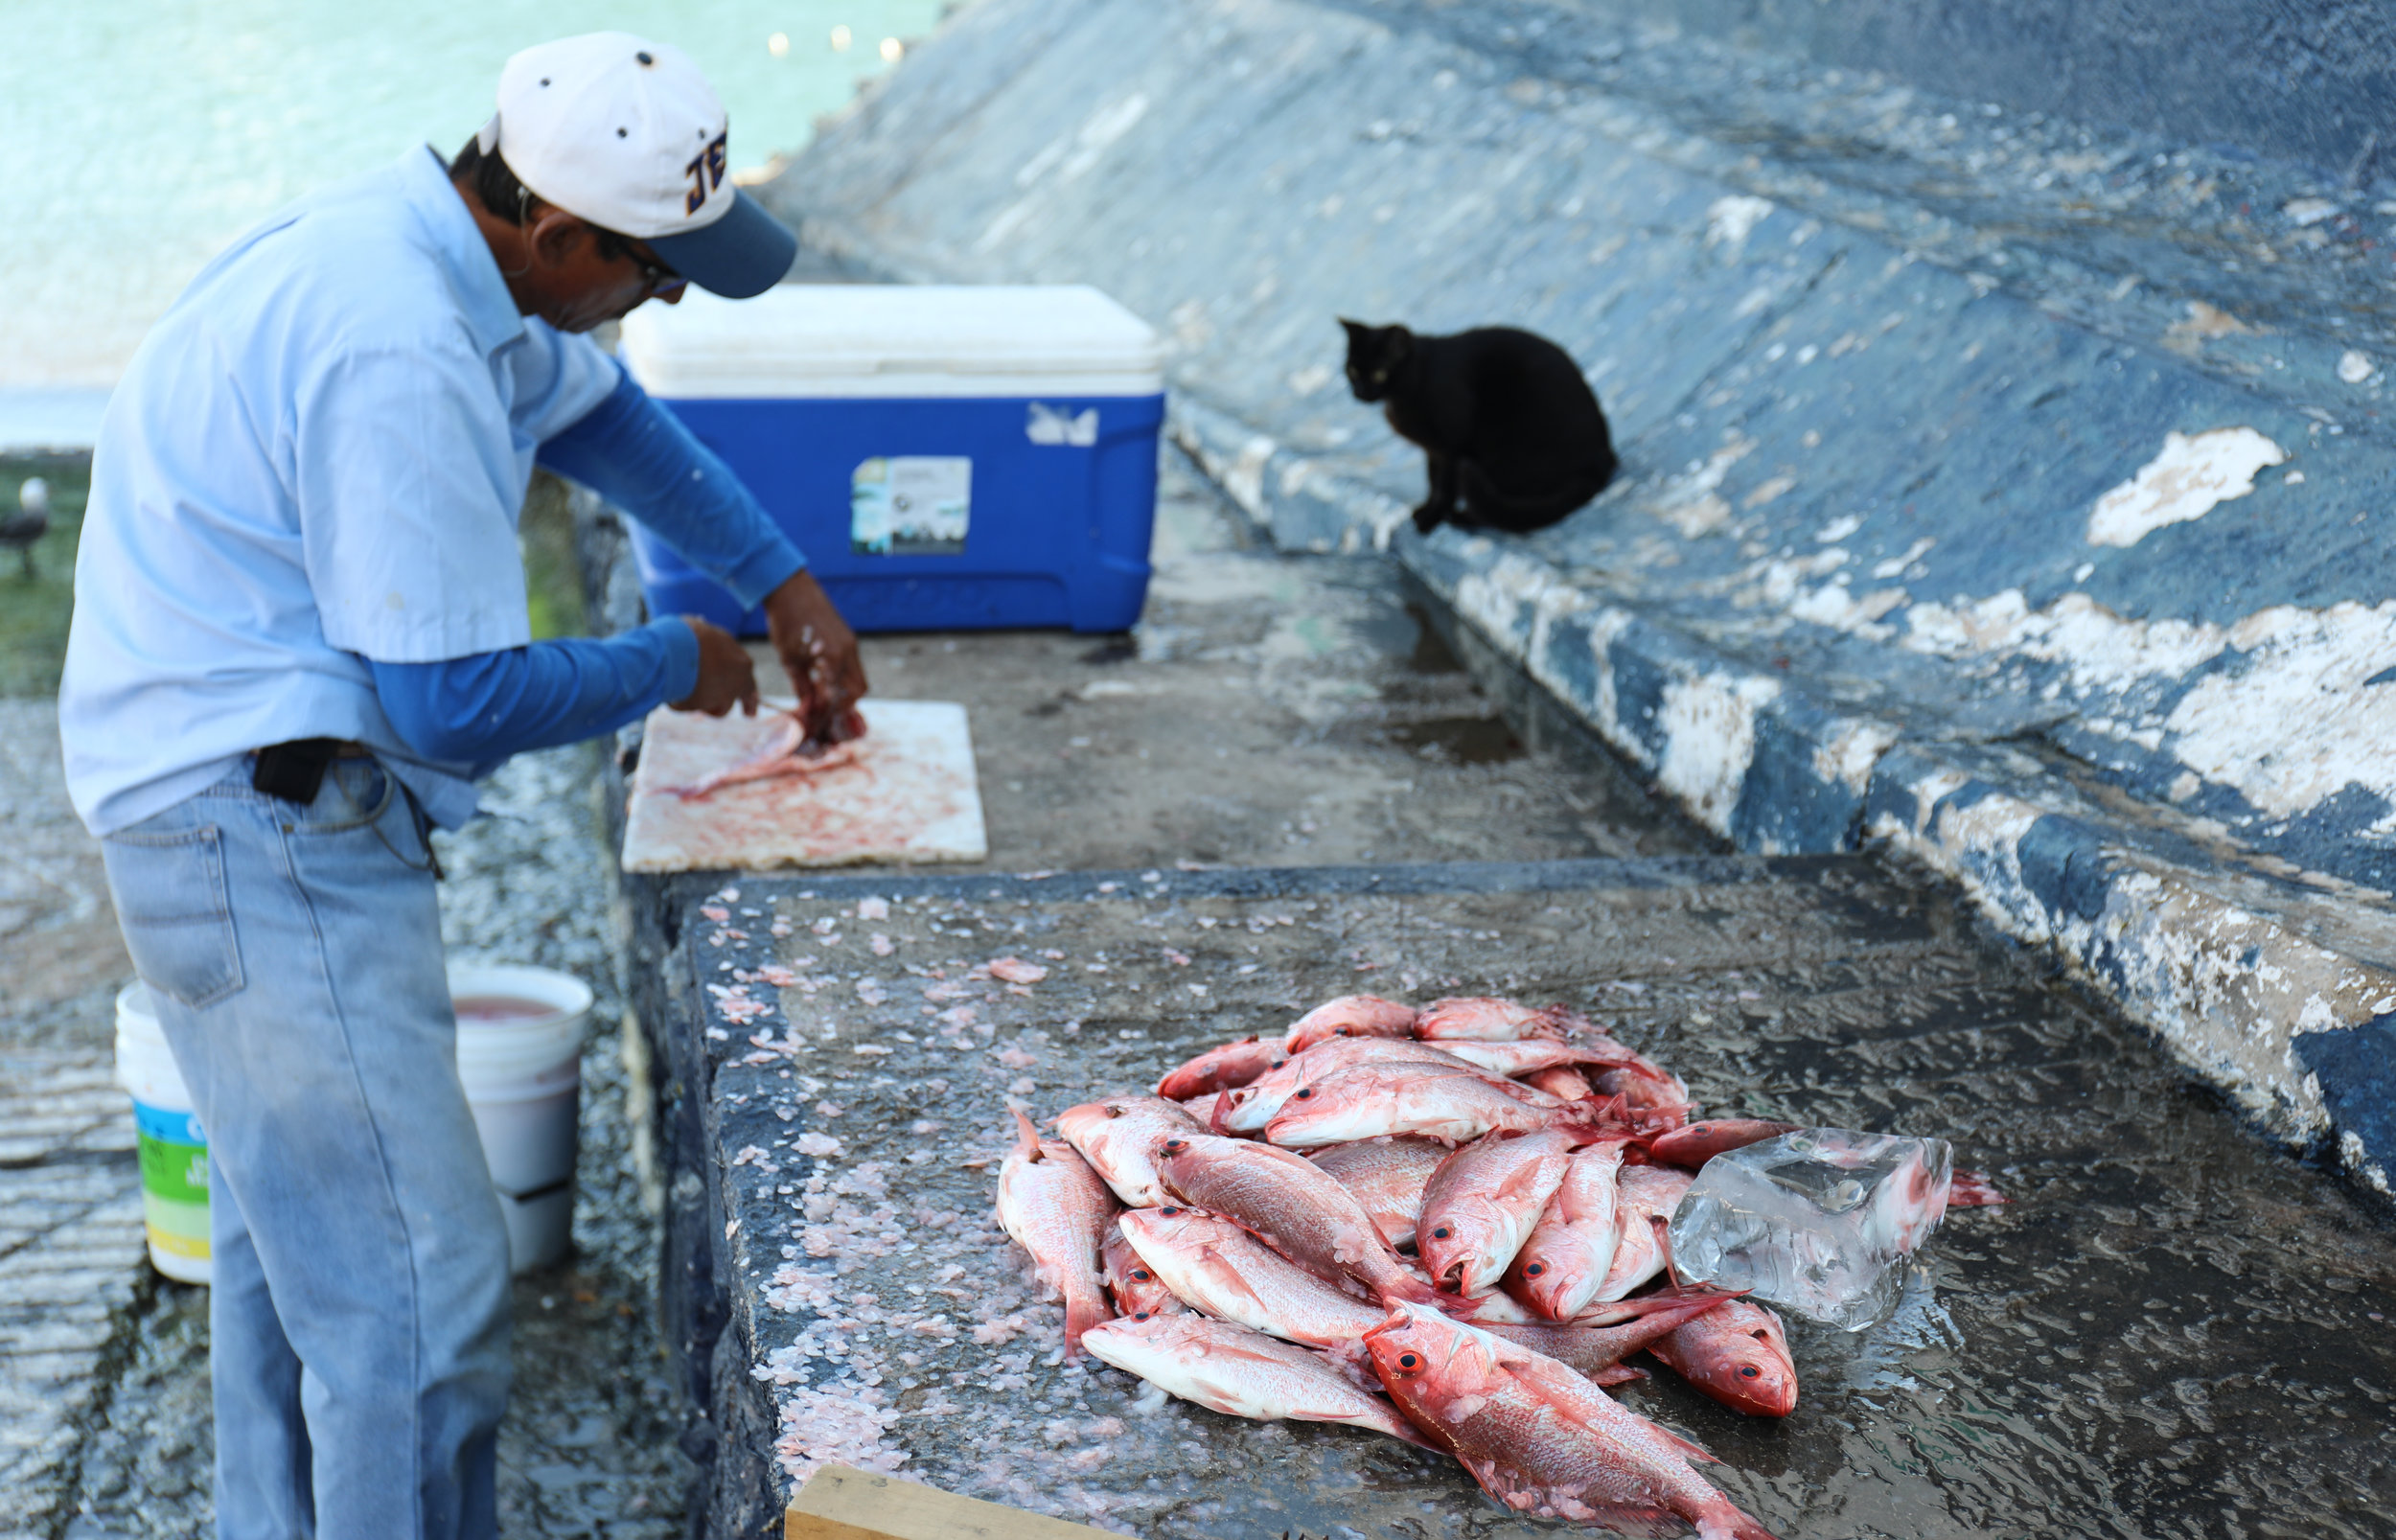 There were dozens of cats that would hang around the docks waiting for the fishermen to clean their days catch.